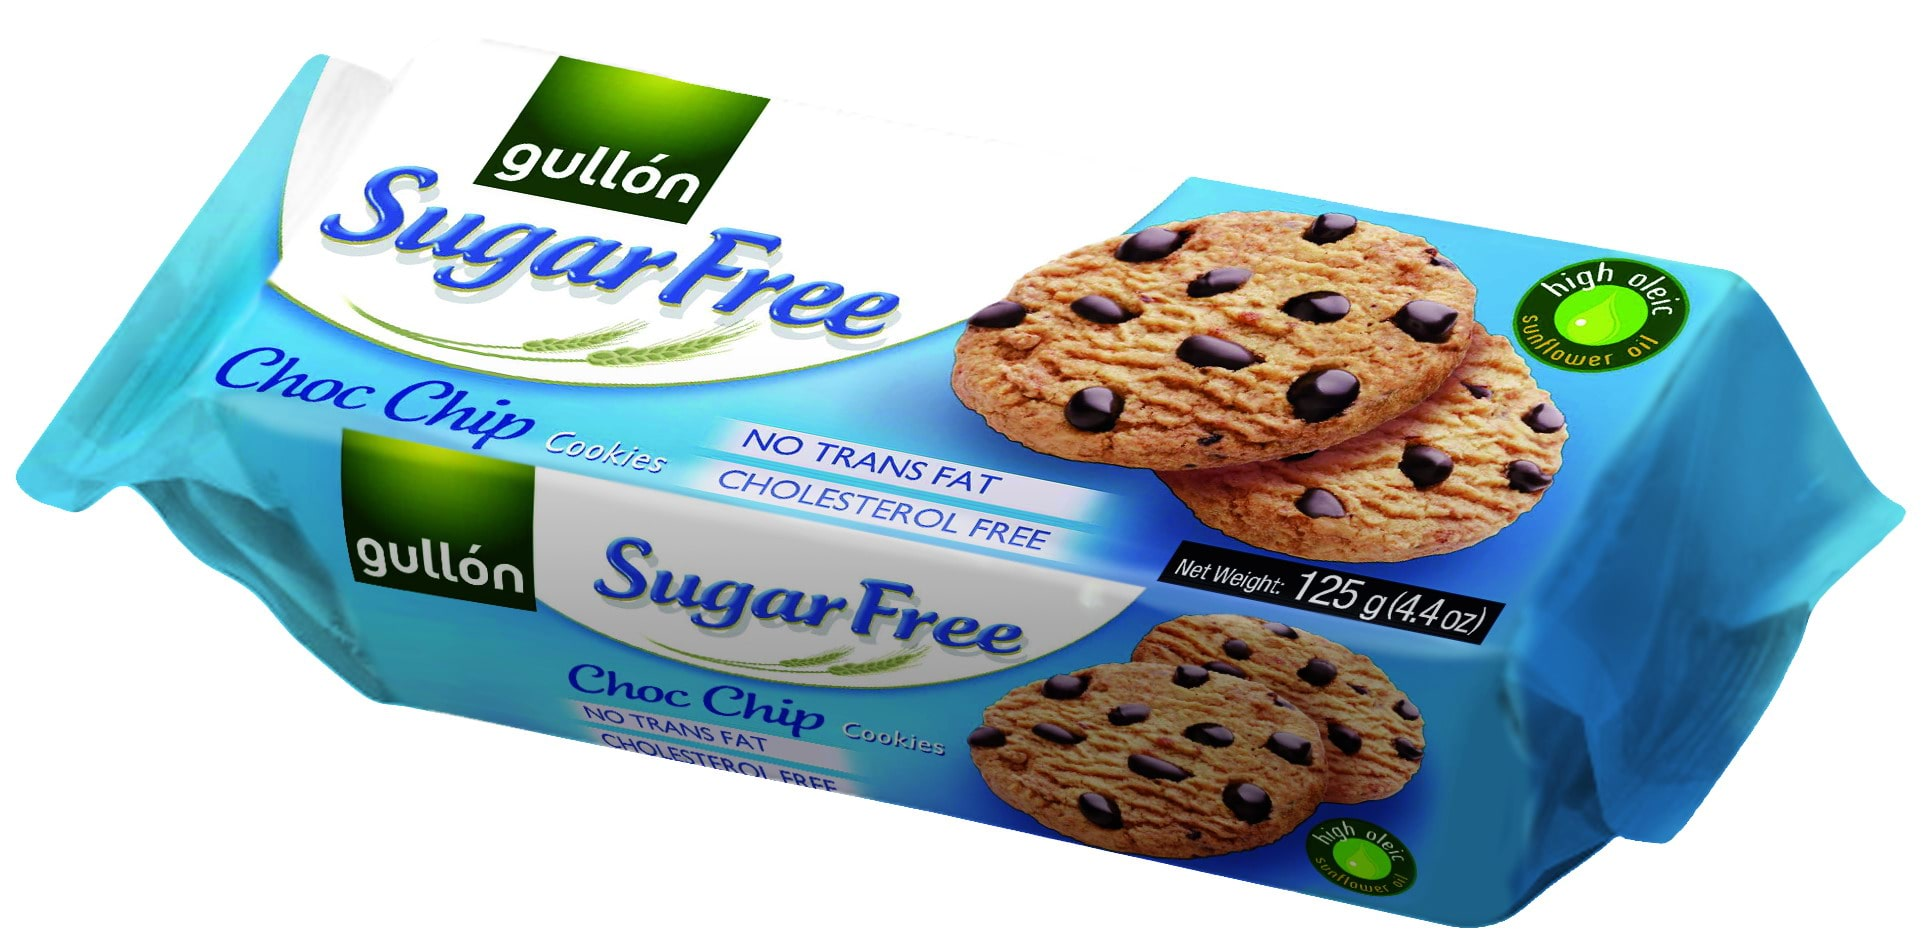 Choc chip SUGAR FREE